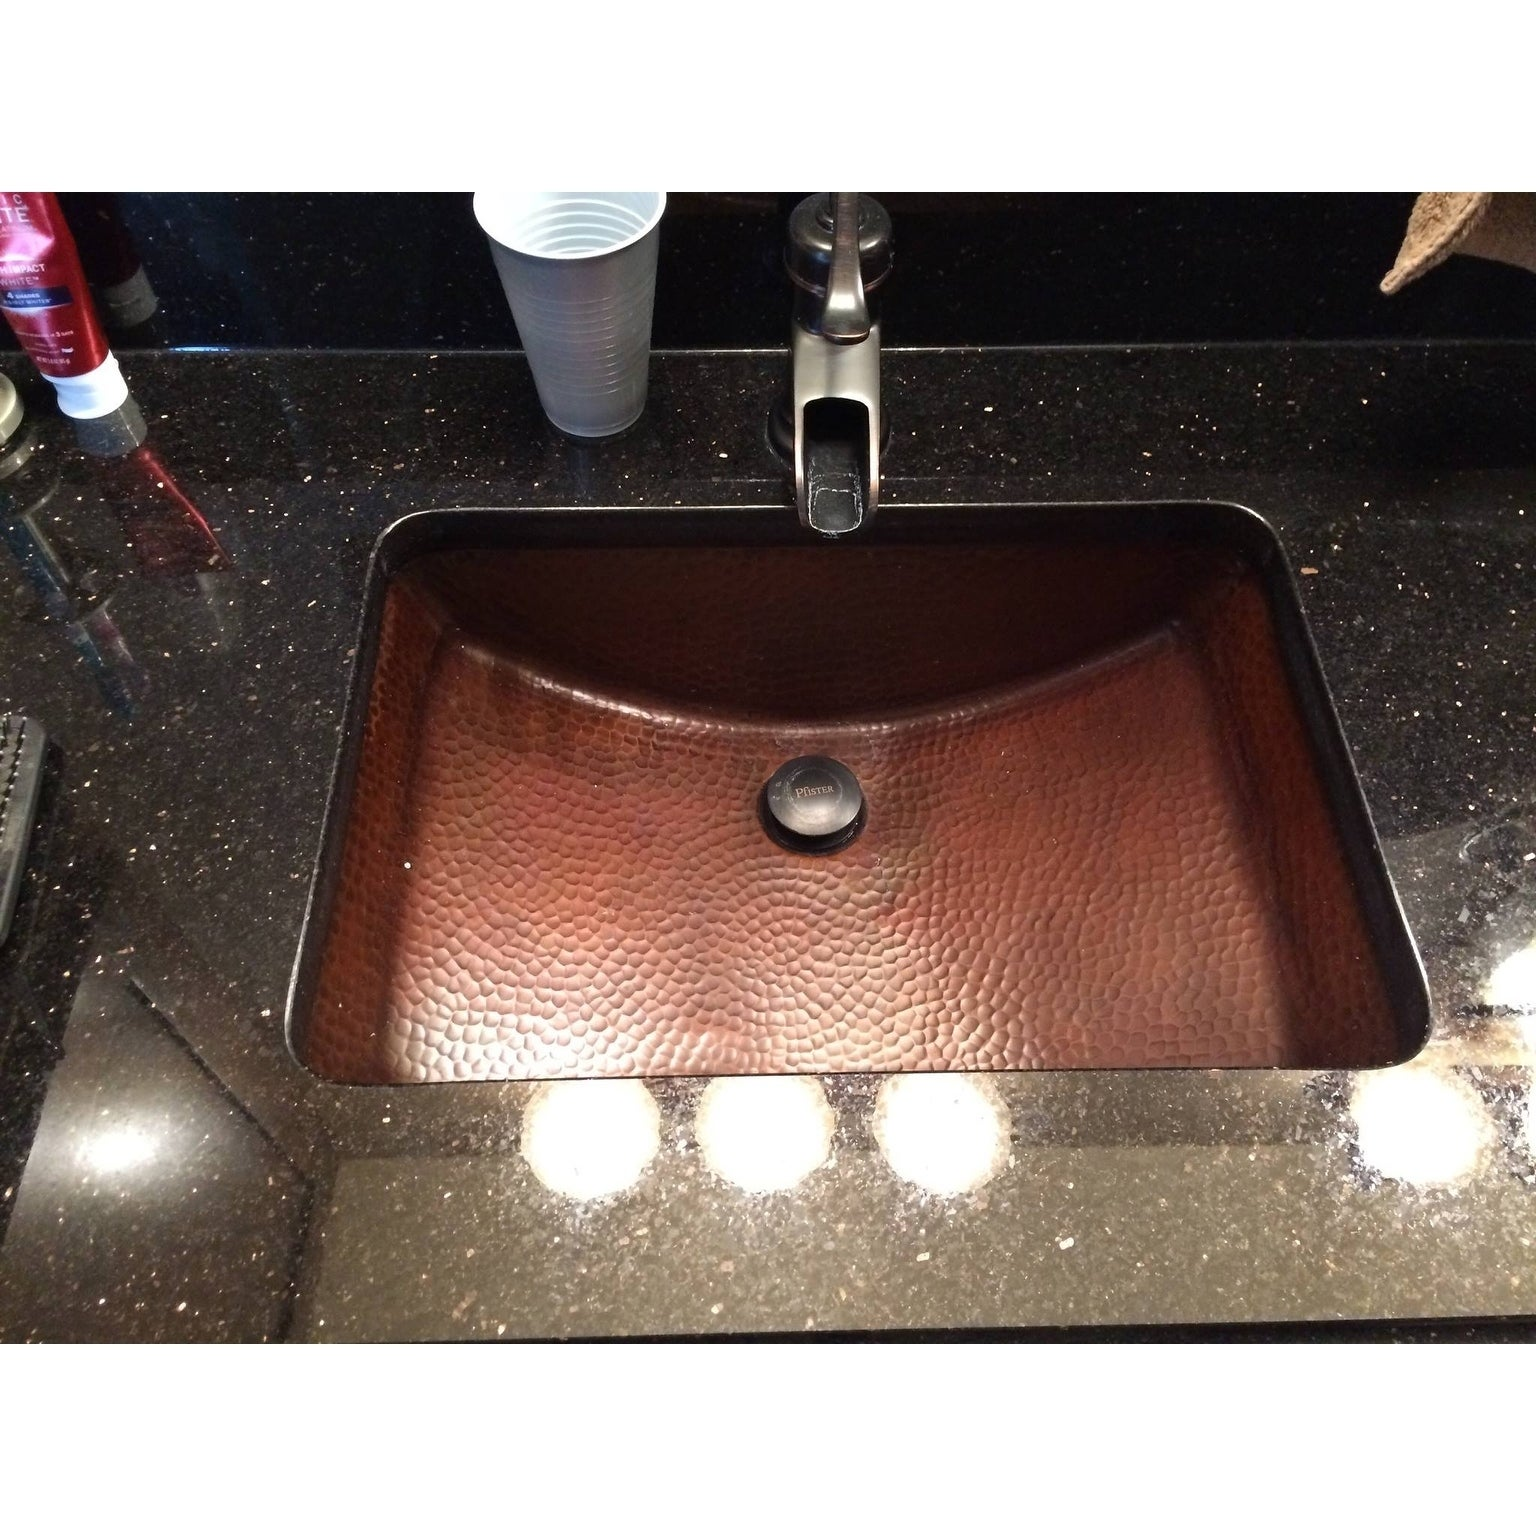 Sinkology Curie 21 Undermount Bath Sink With Overflow In Aged Copper Free Shipping Today 10148692